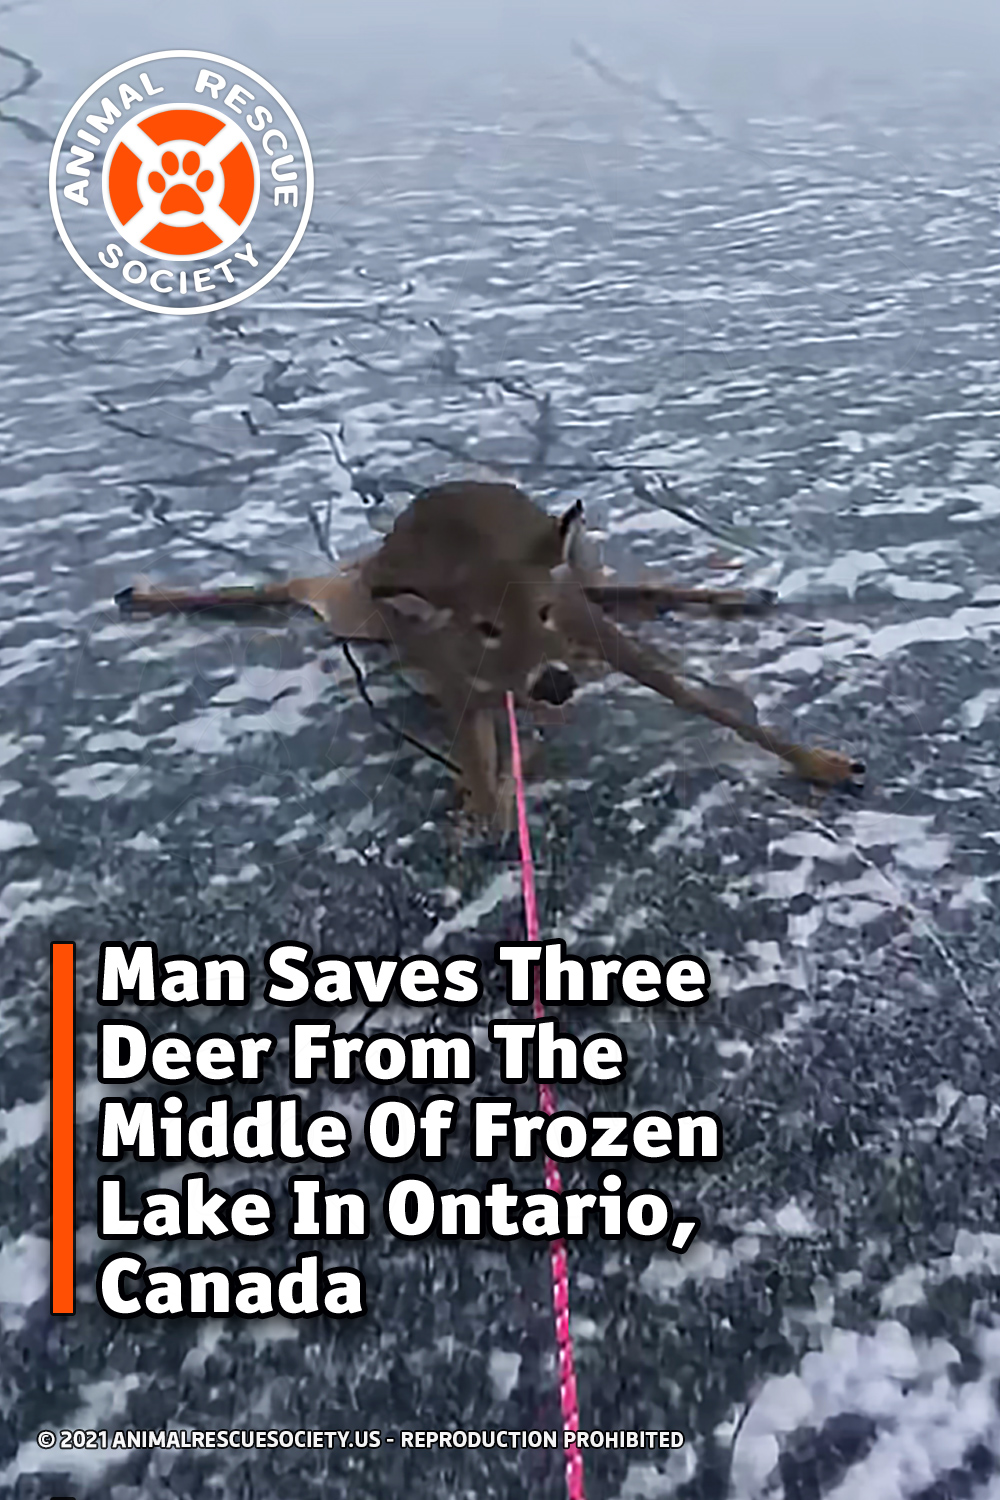 Man Saves Three Deer From The Middle Of Frozen Lake In Ontario, Canada